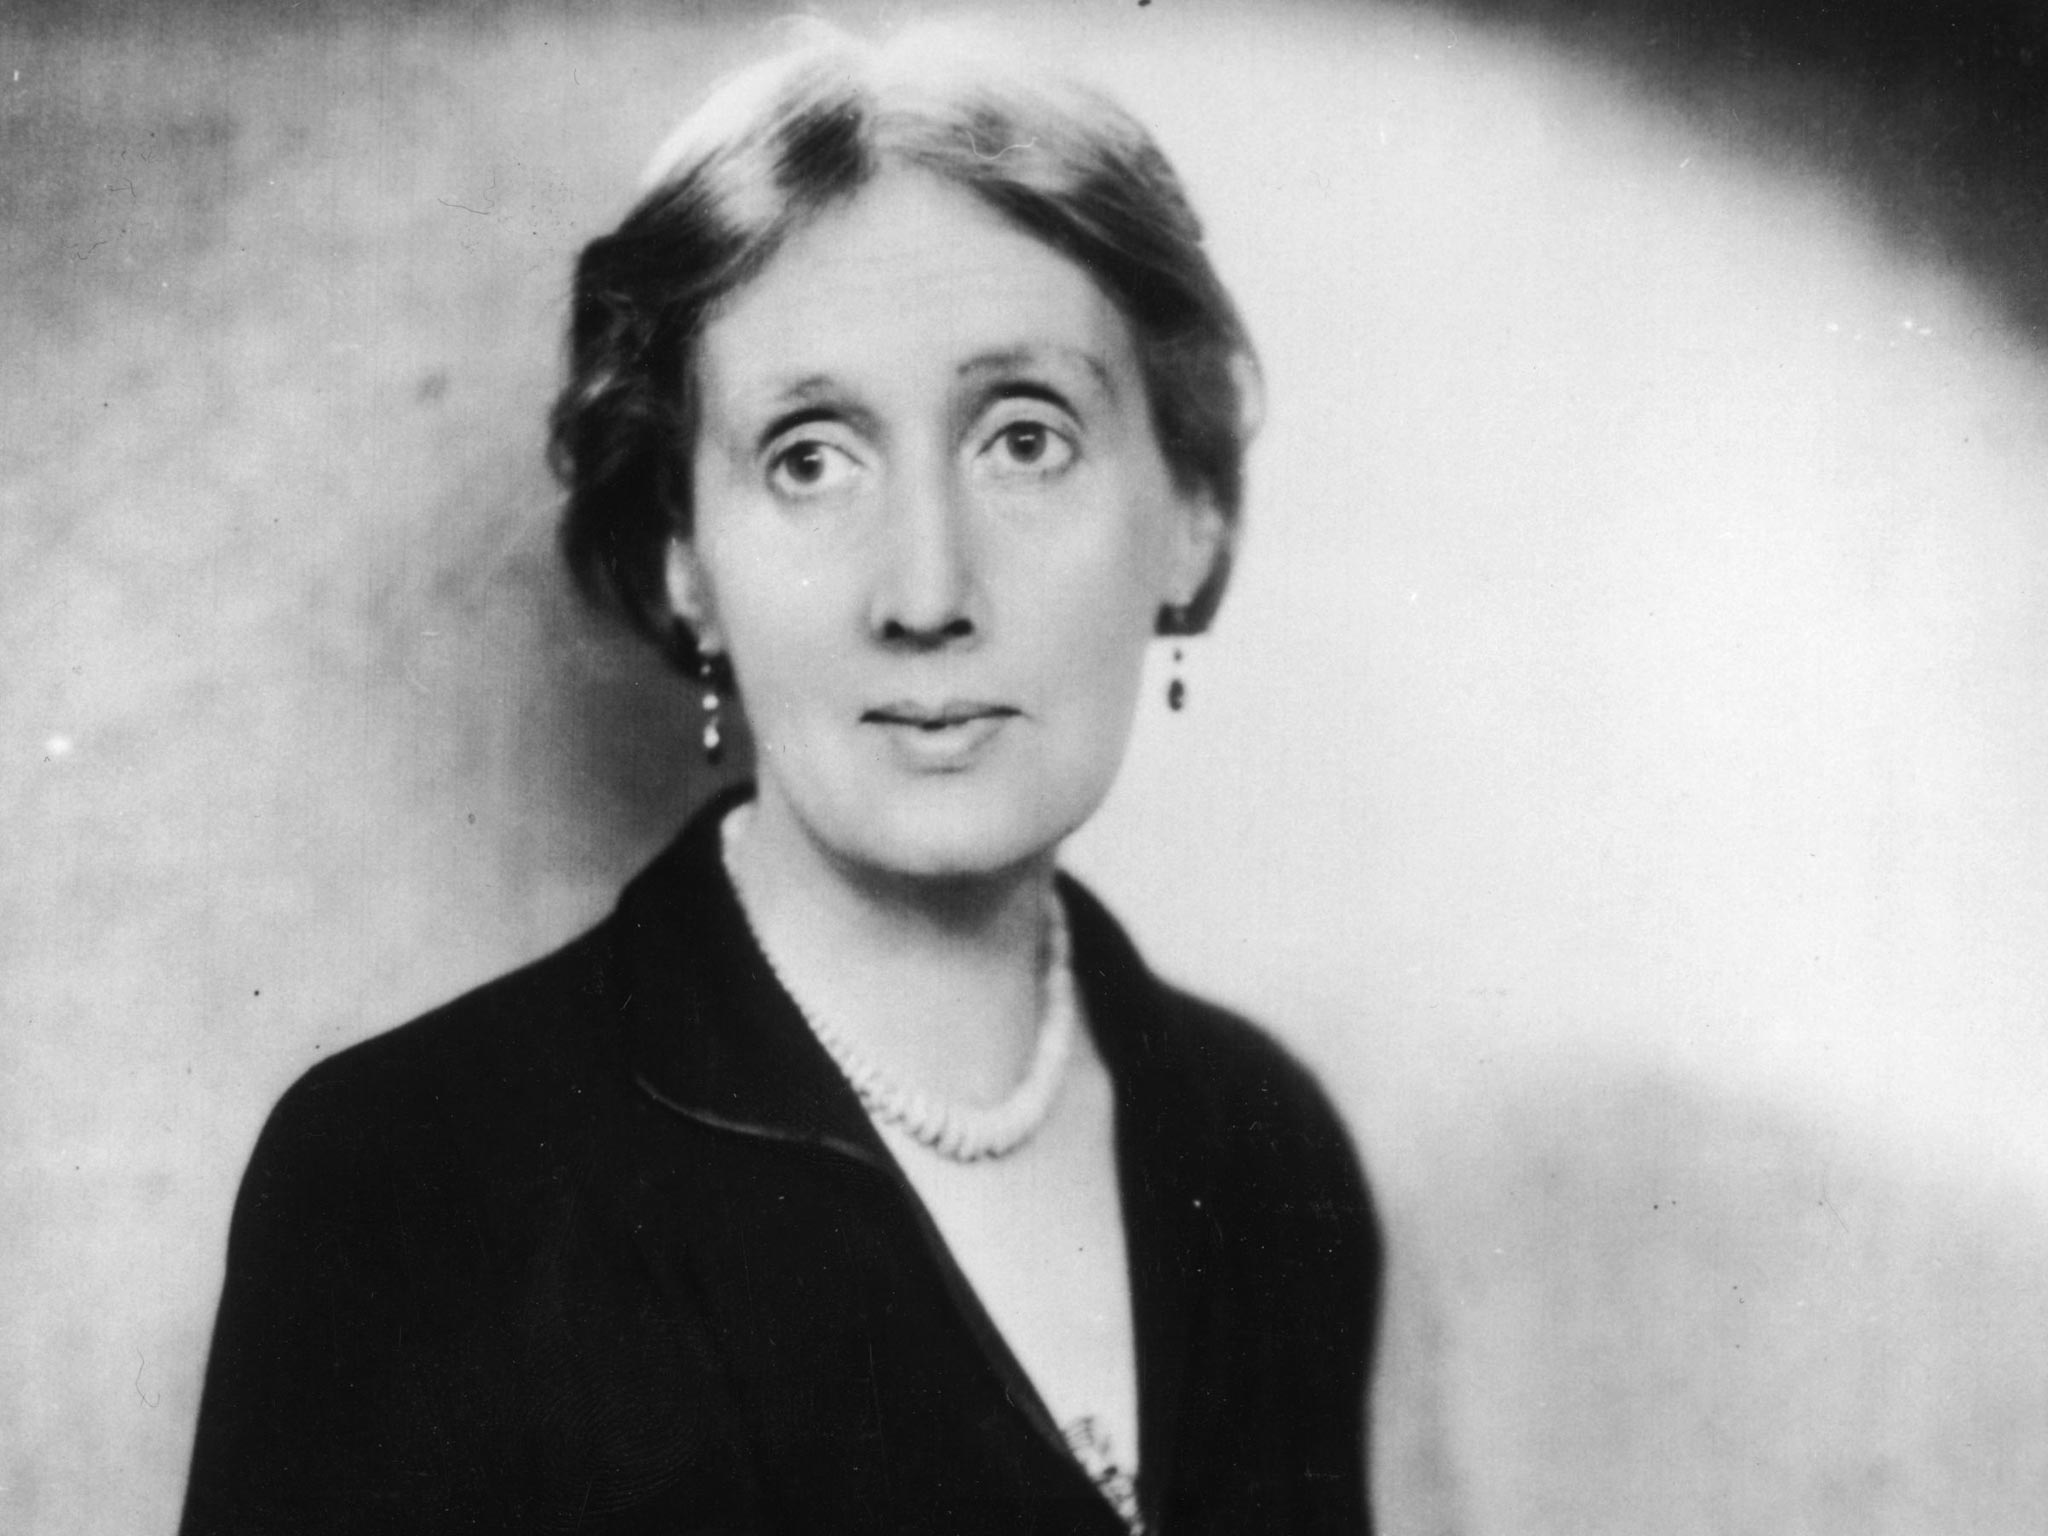 virginia woolf the social encyclopedia virginia woolf national portrait gallery announces new virginia woolf